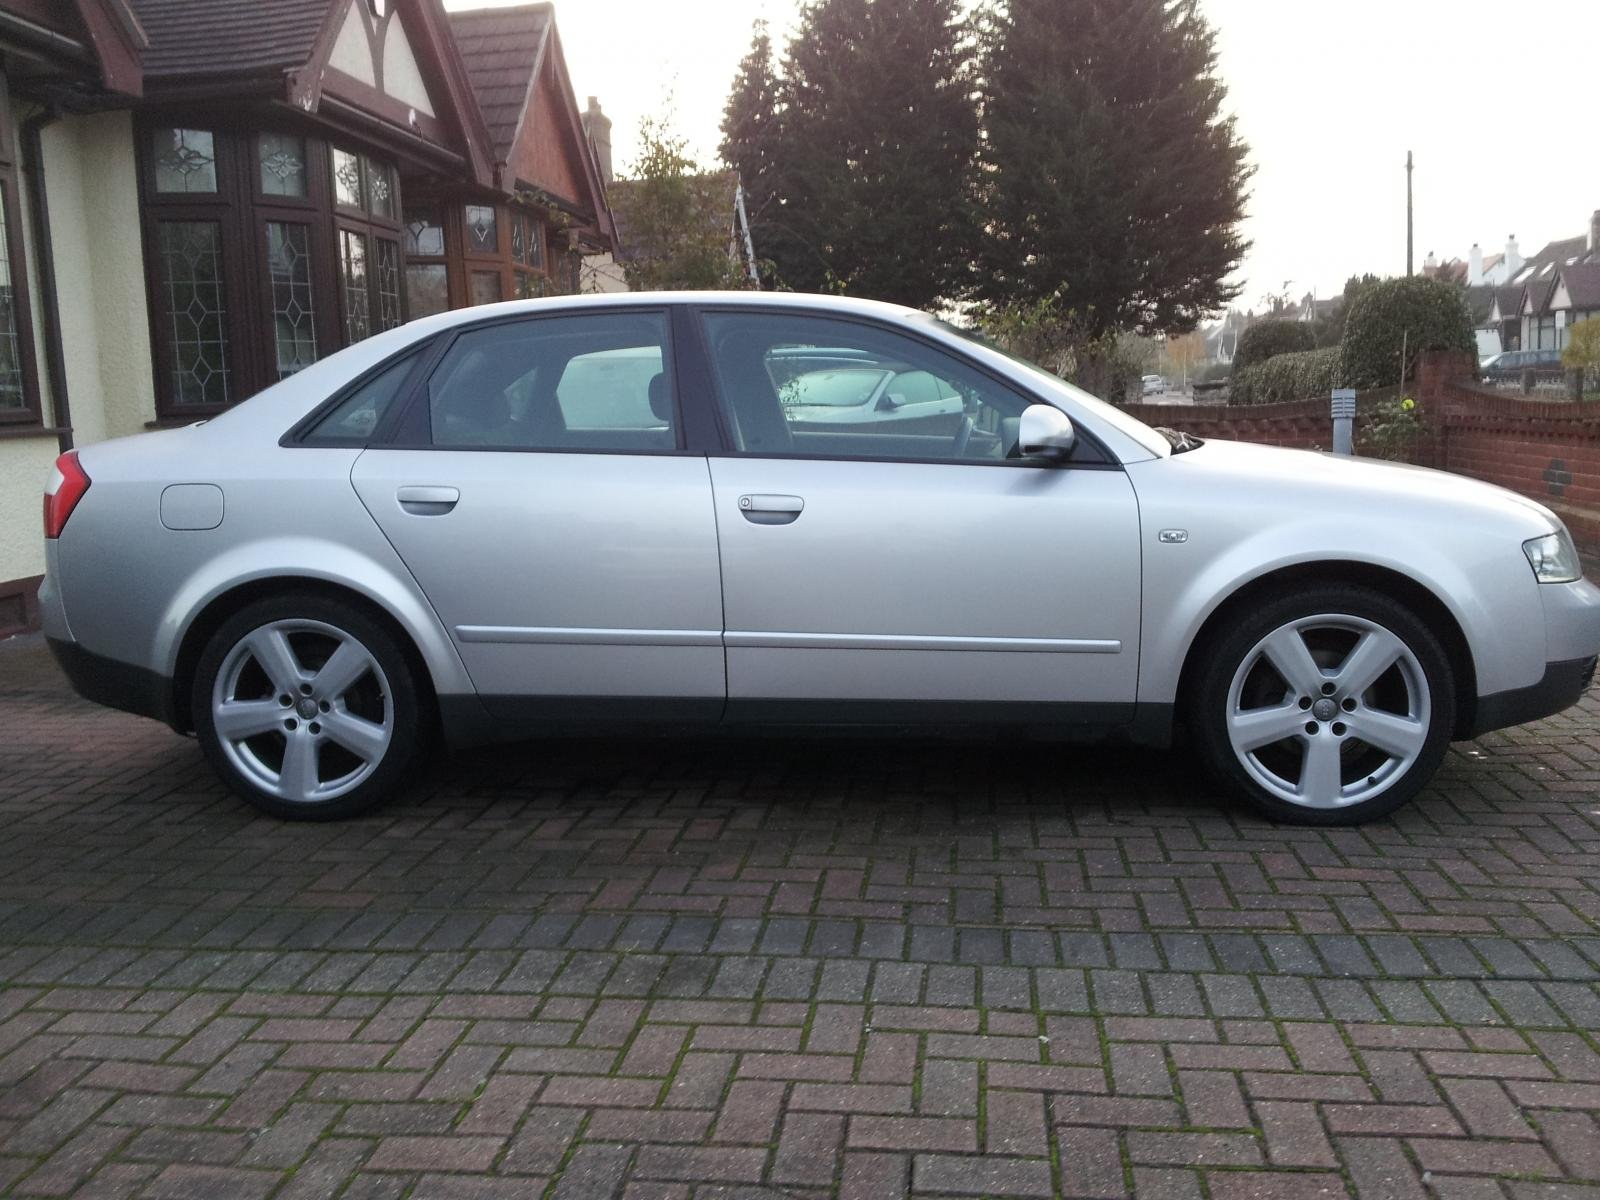 audi a4 1 9tdi 130bhp lowering advice needed audi forums. Black Bedroom Furniture Sets. Home Design Ideas